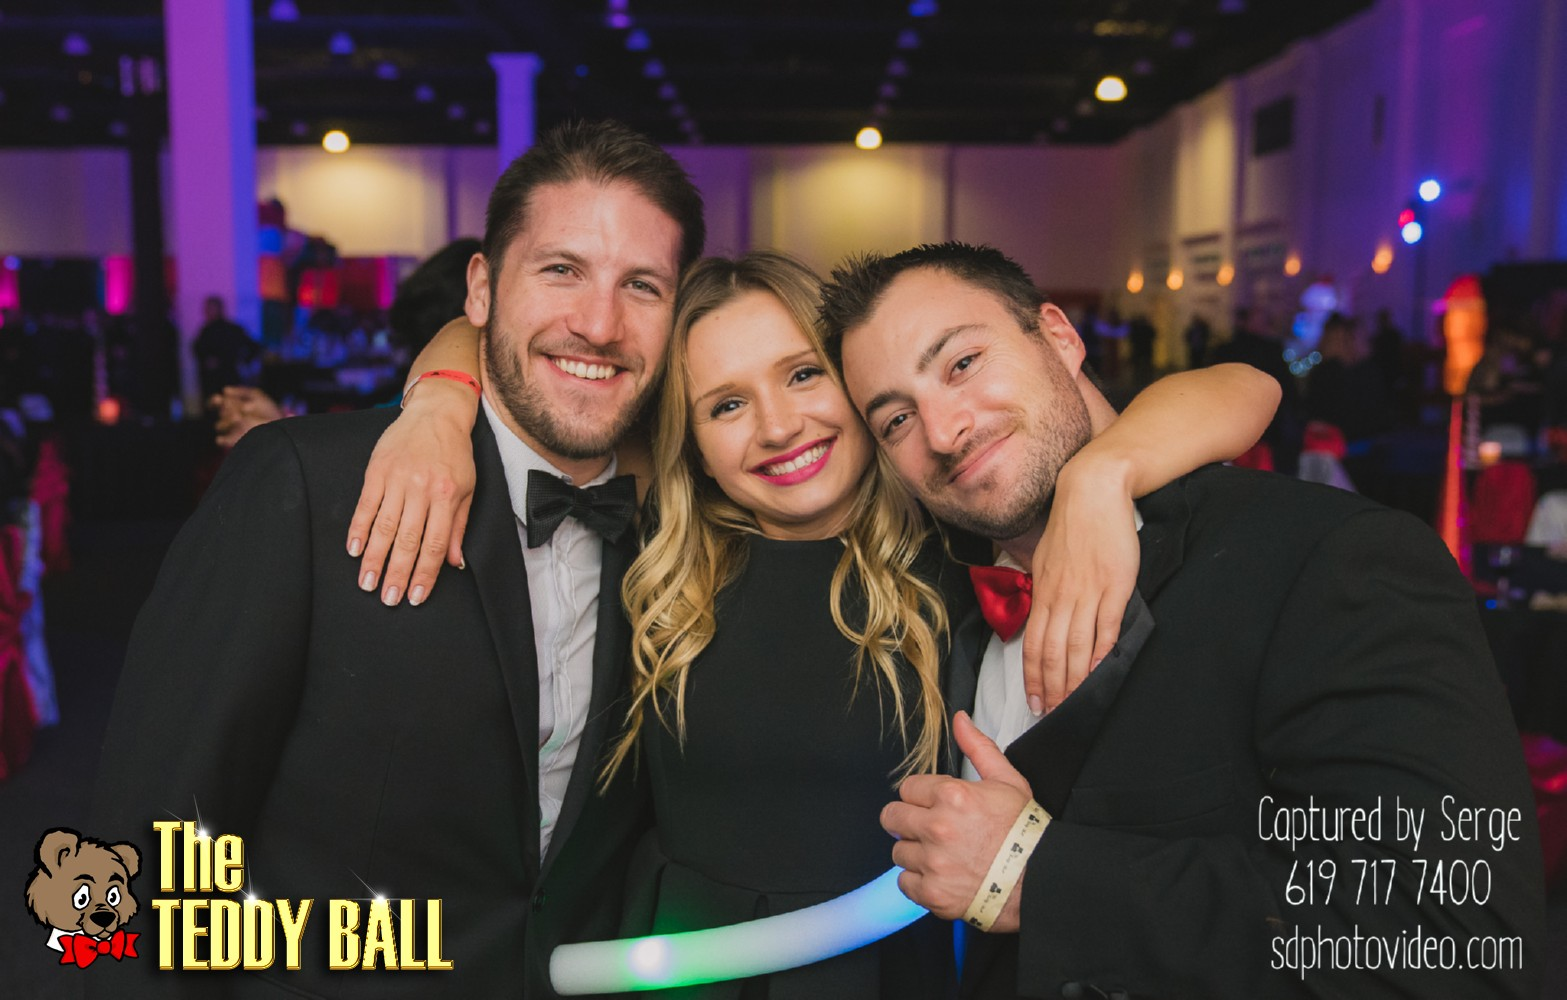 Teddy-Ball-2017-SD-Photo-Video-337.jpg